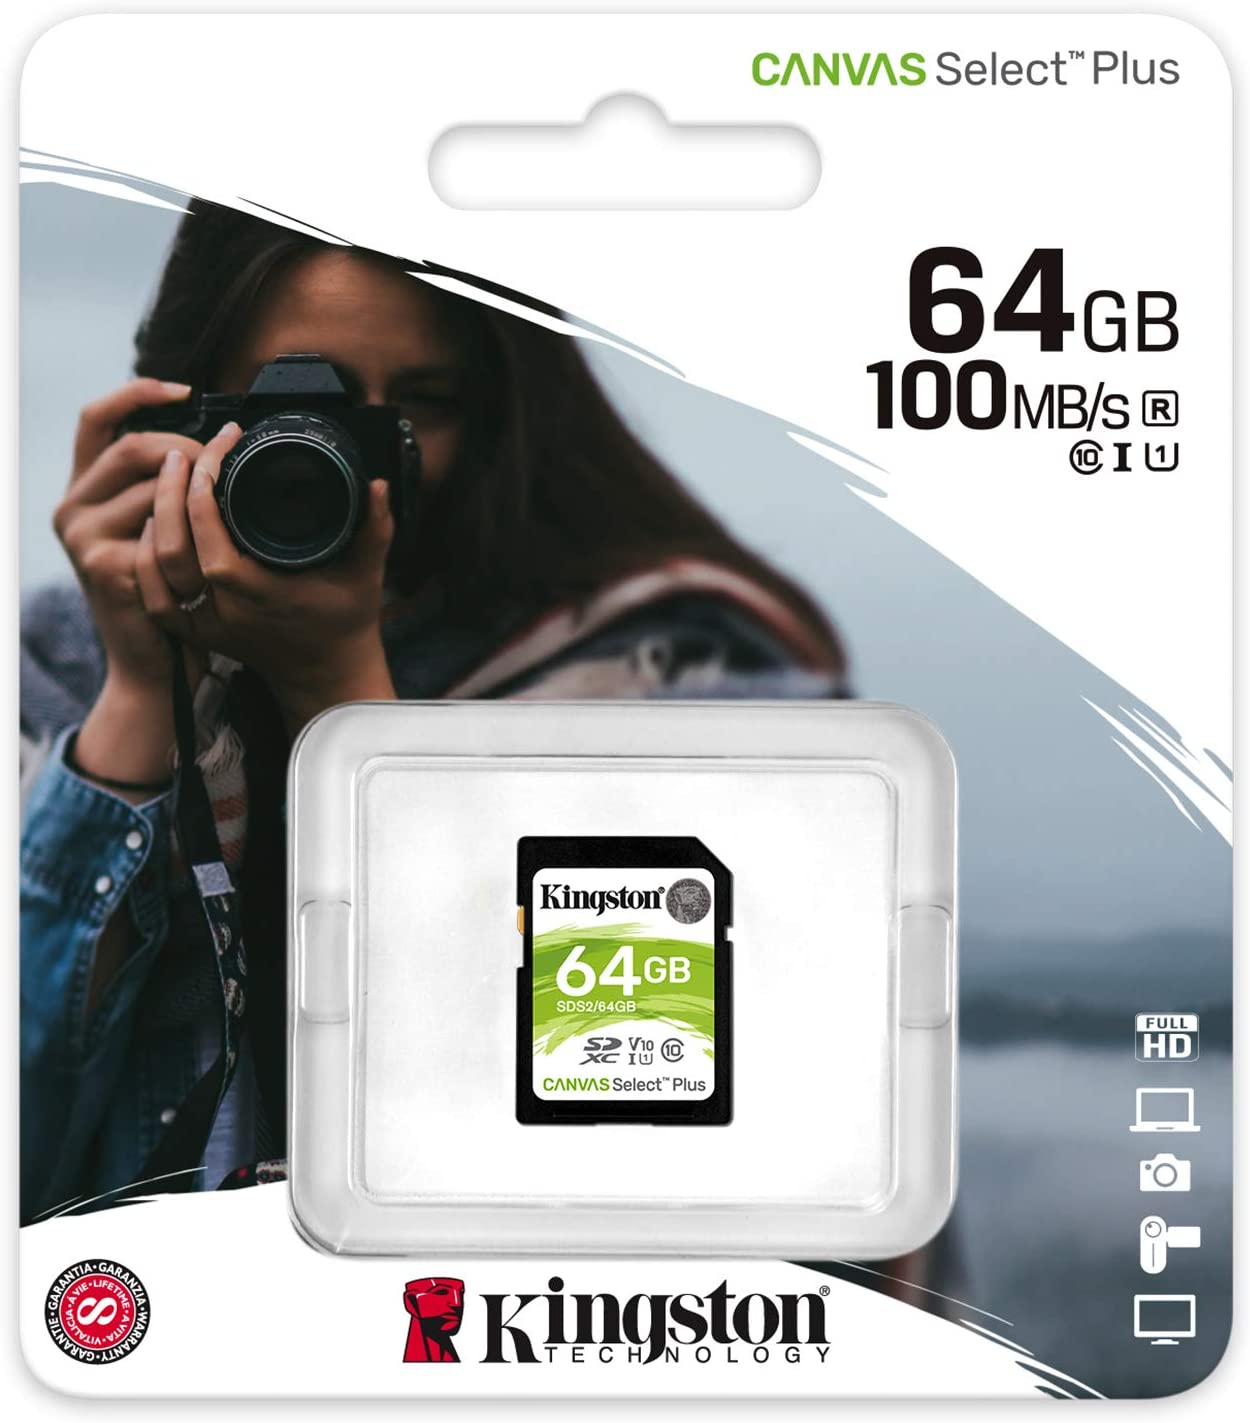 80MBs Works with Kingston Professional Kingston 64GB for Micromax Canvas Turbo Mini MicroSDXC Card Custom Verified by SanFlash.